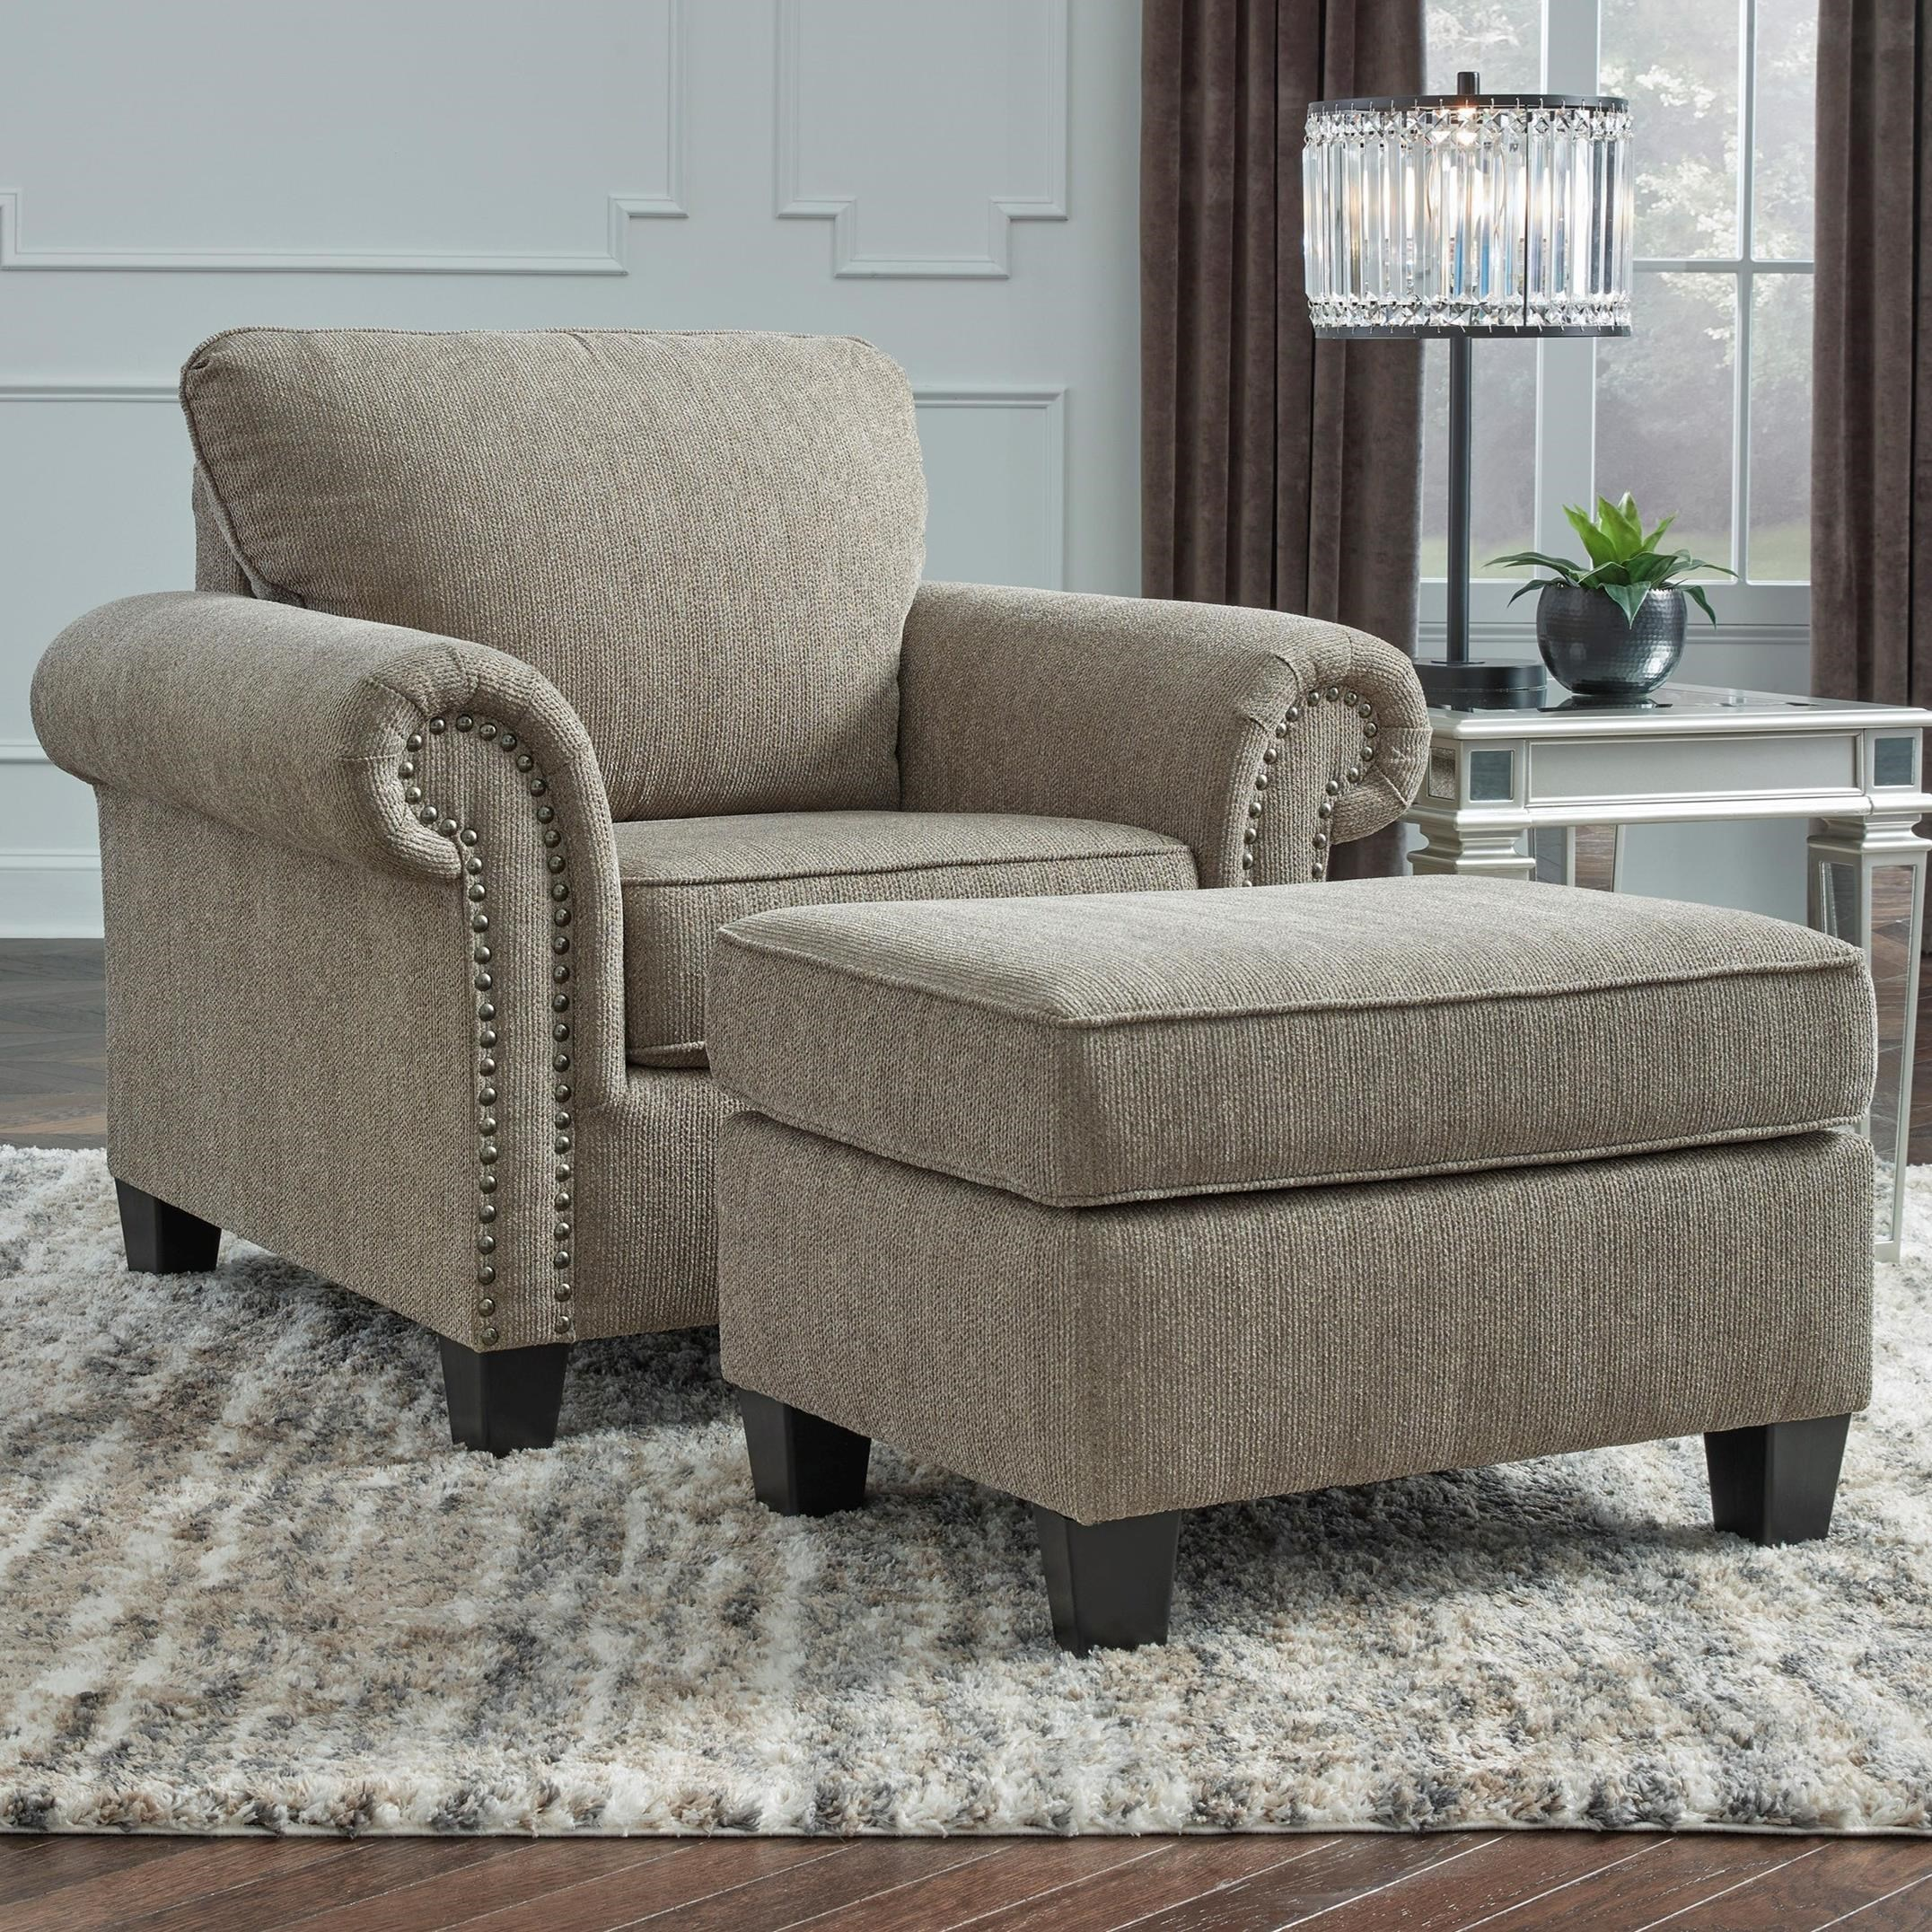 Shewsbury Chair and Ottoman by Benchcraft at Furniture Barn